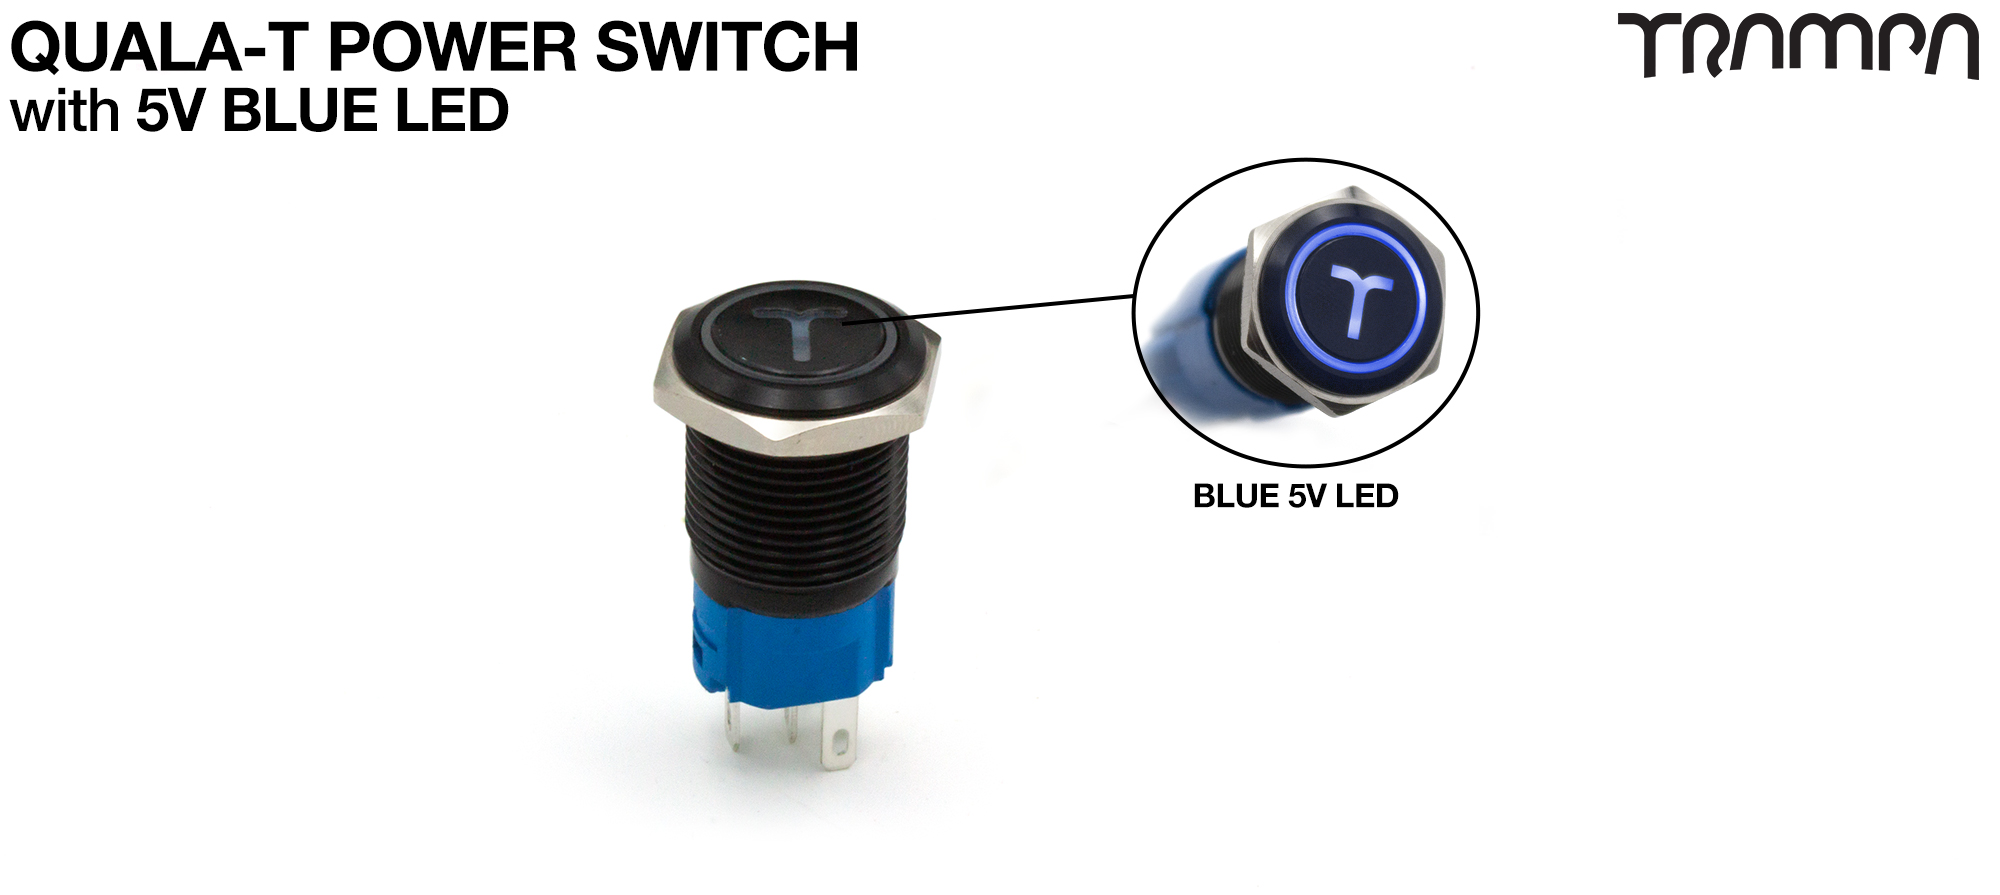 TRAMPA Switch with 5V BLUE LED QUALA-T & 16mm Stainless Steel Fixing Nut